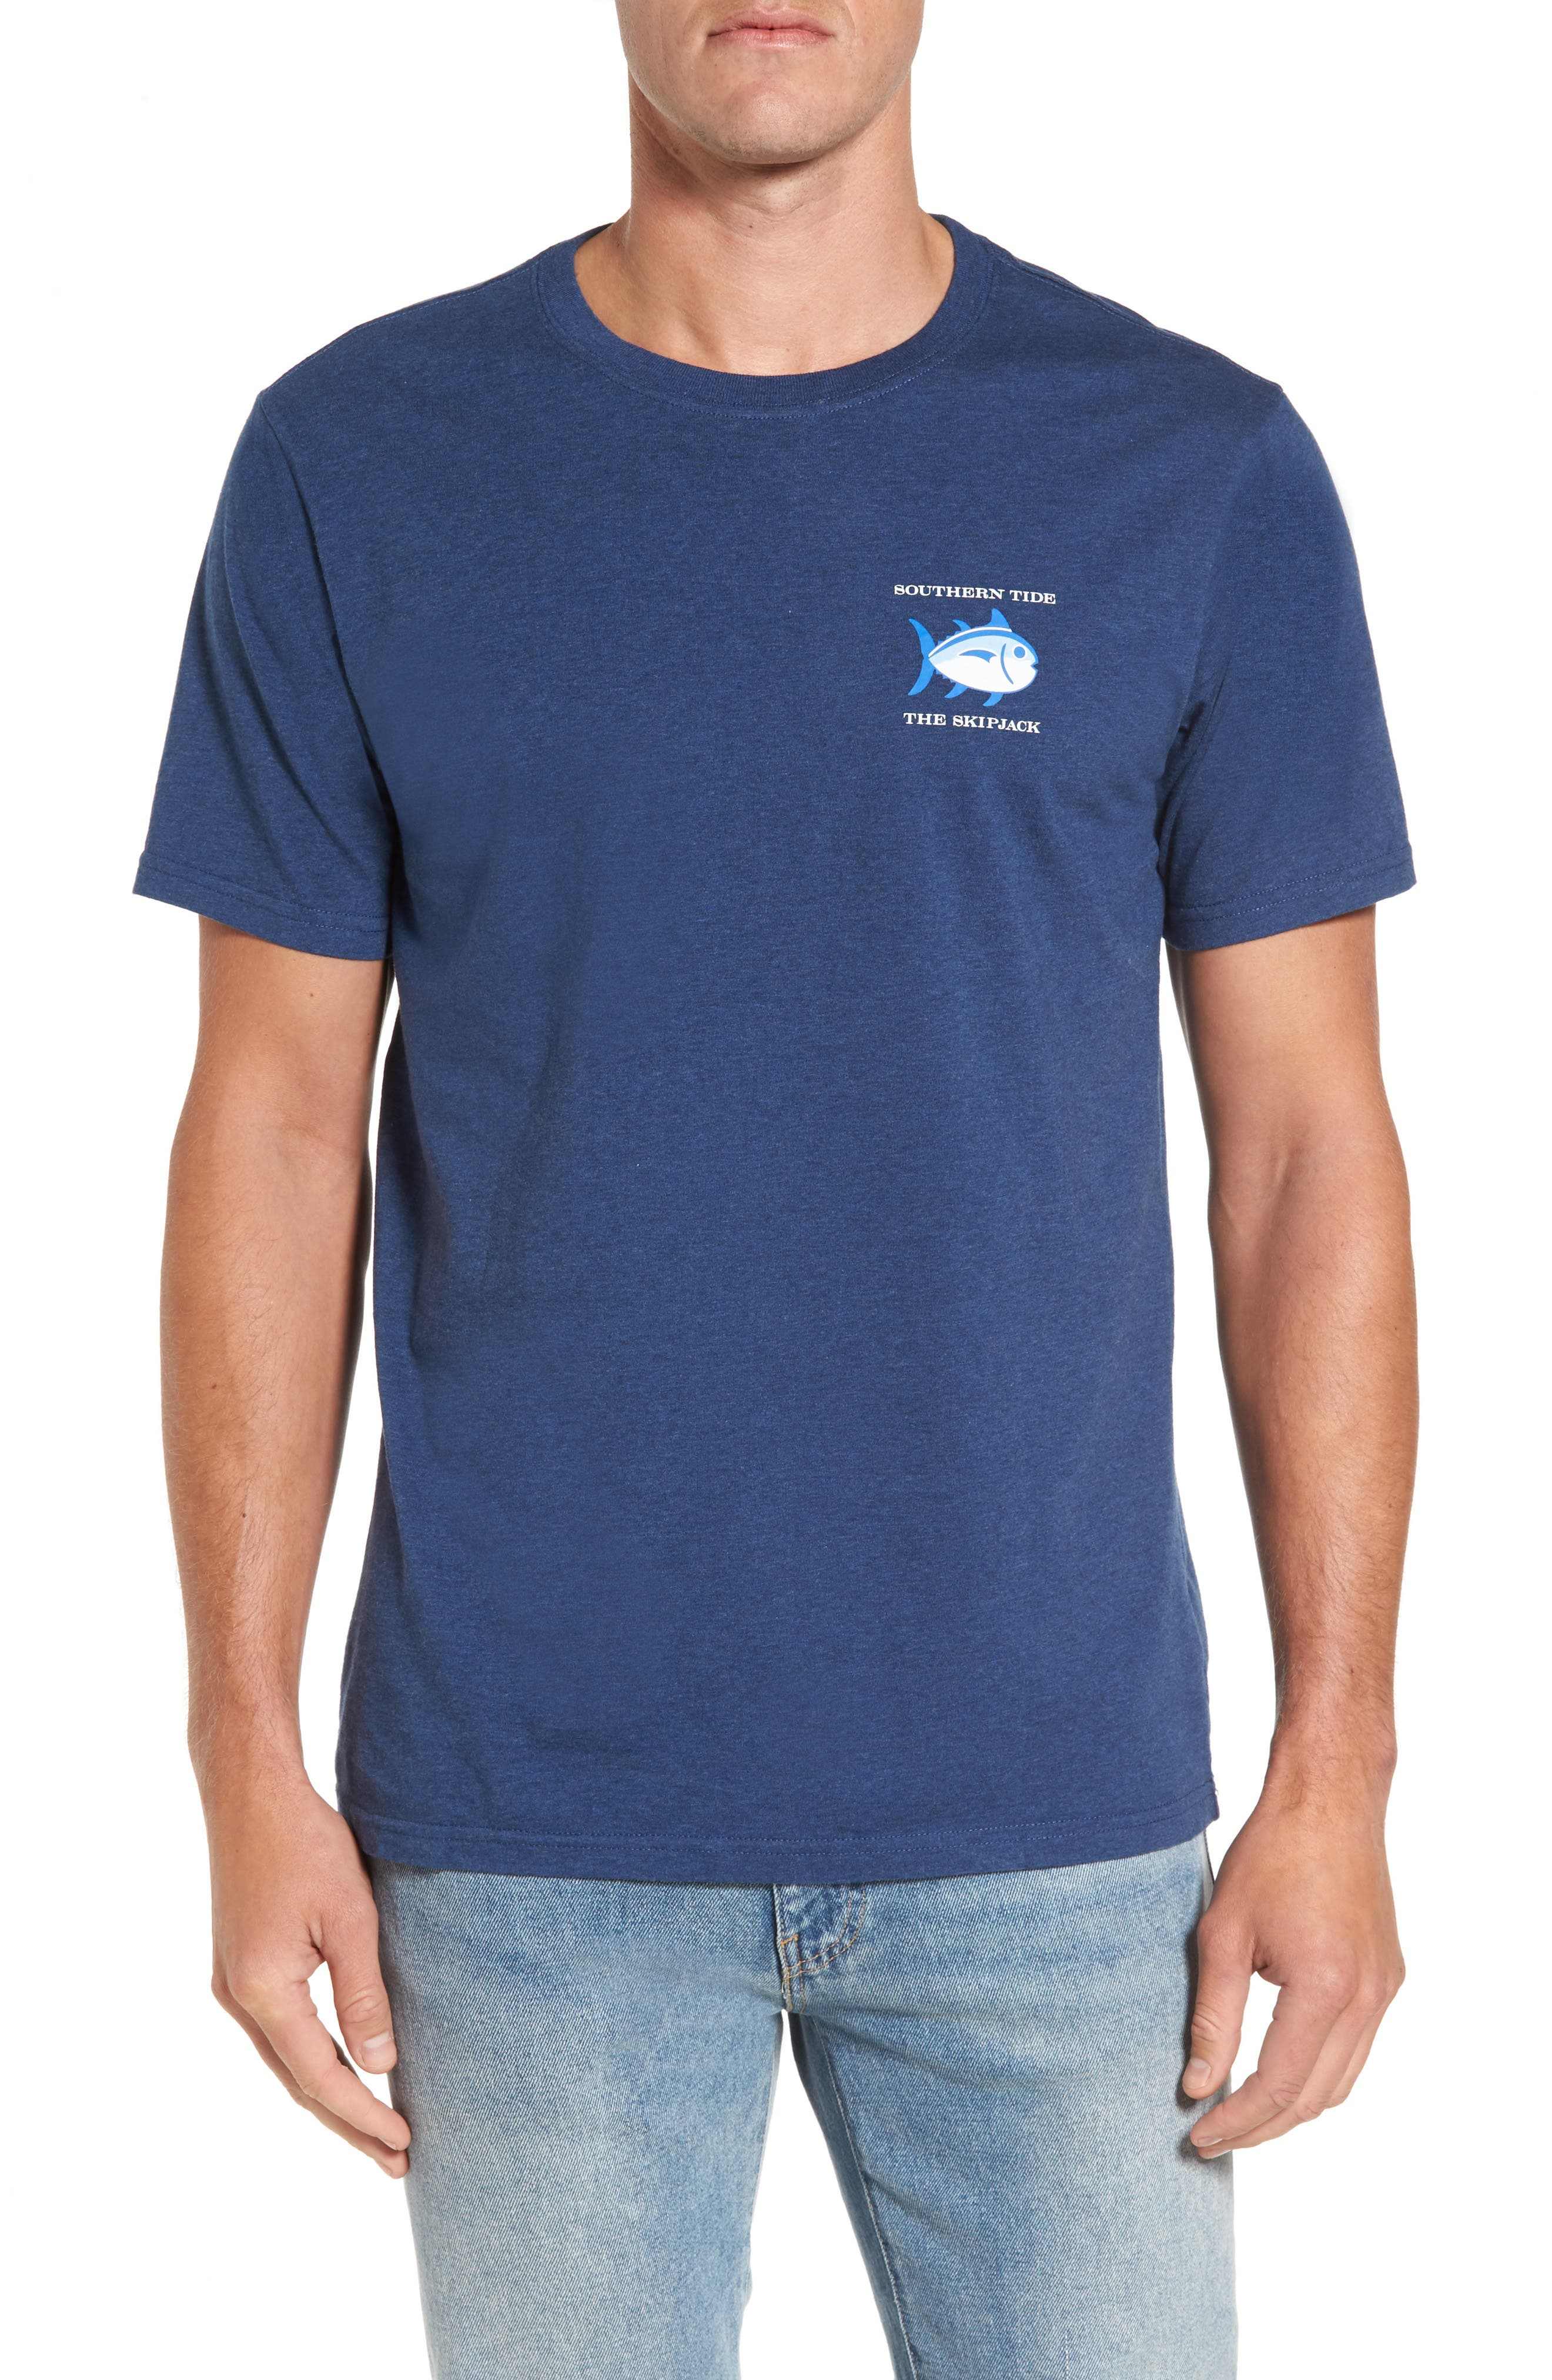 Alternate Image 1 Selected - Southern Tide Original Graphic T-Shirt